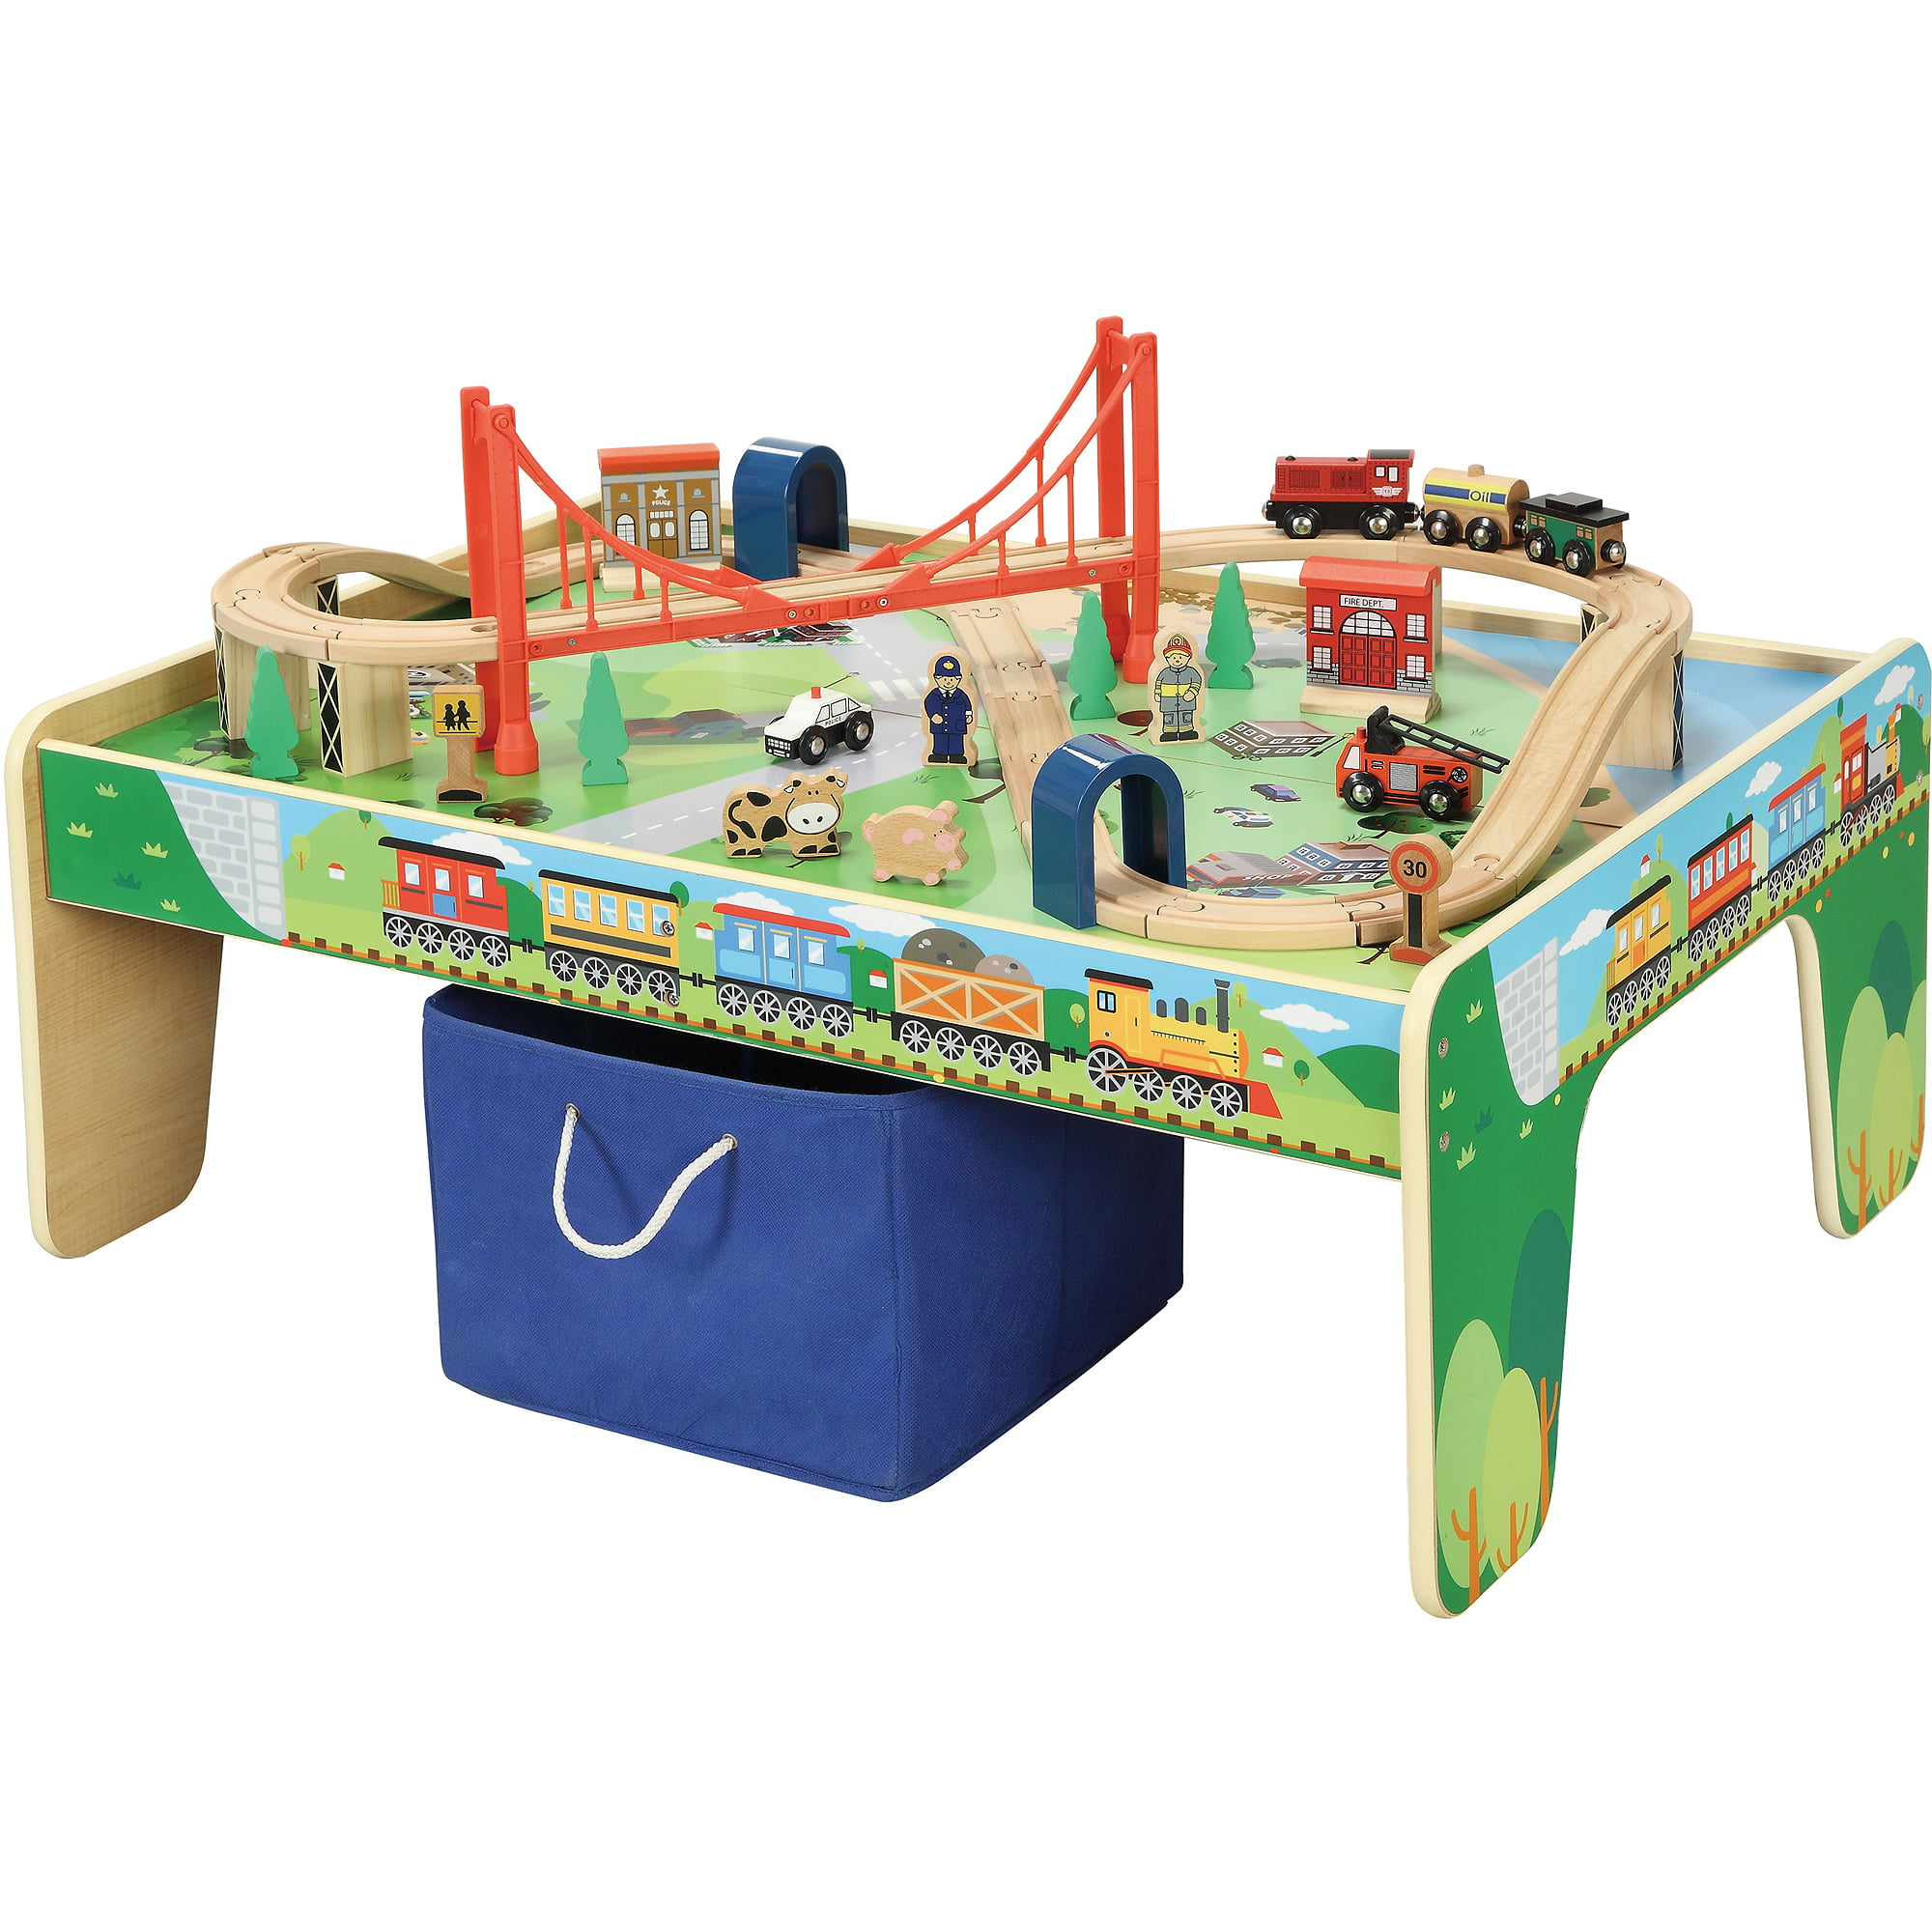 Merveilleux Wooden 50 Piece Train Set With Small Table Only At Walmart   Walmart.com